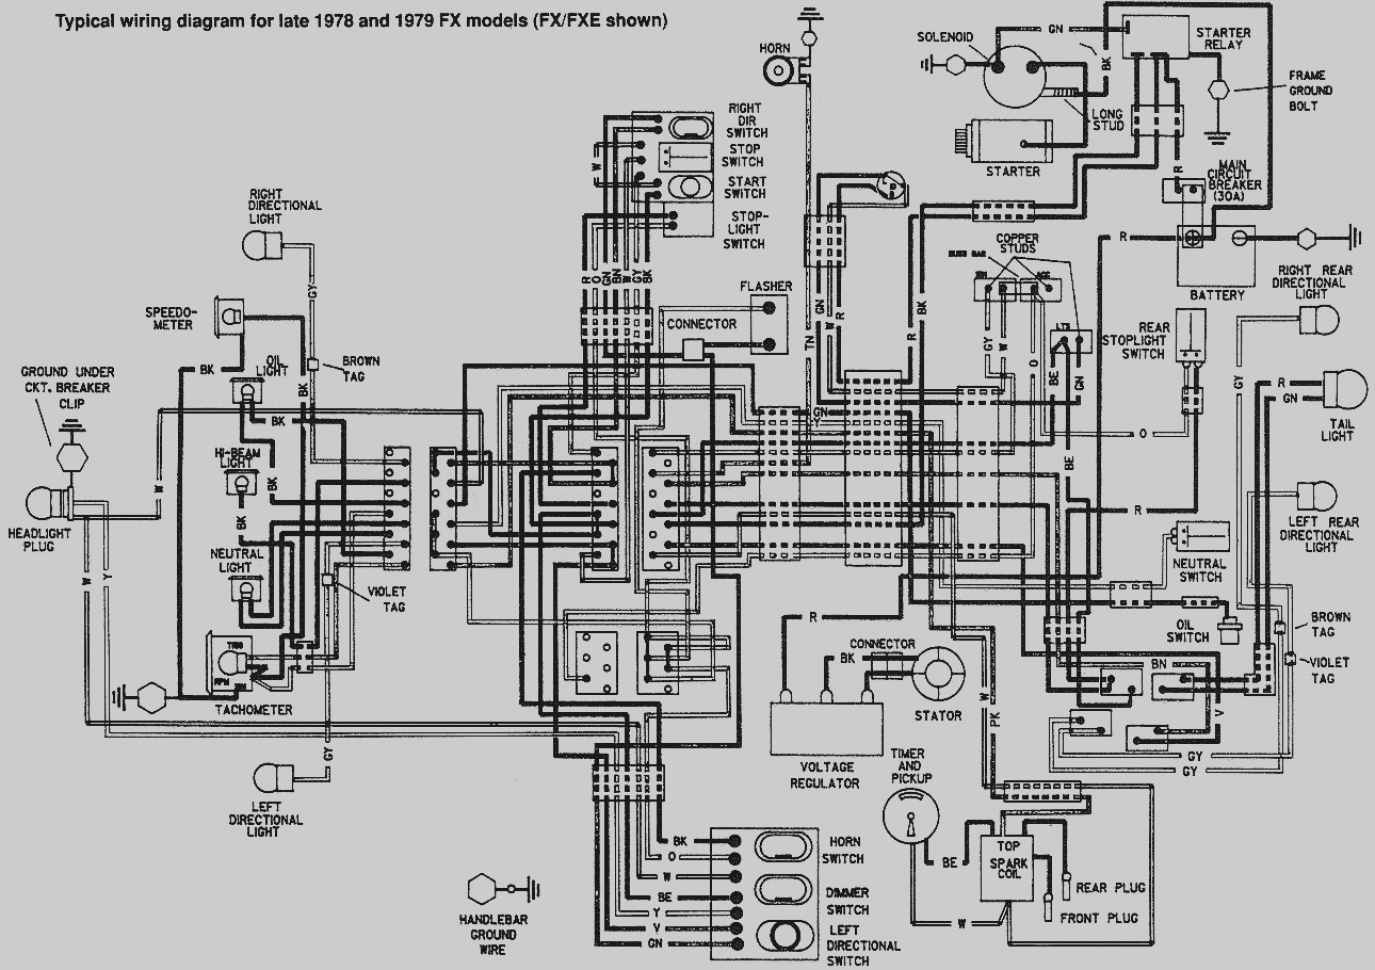 J11 Wiring Diagram